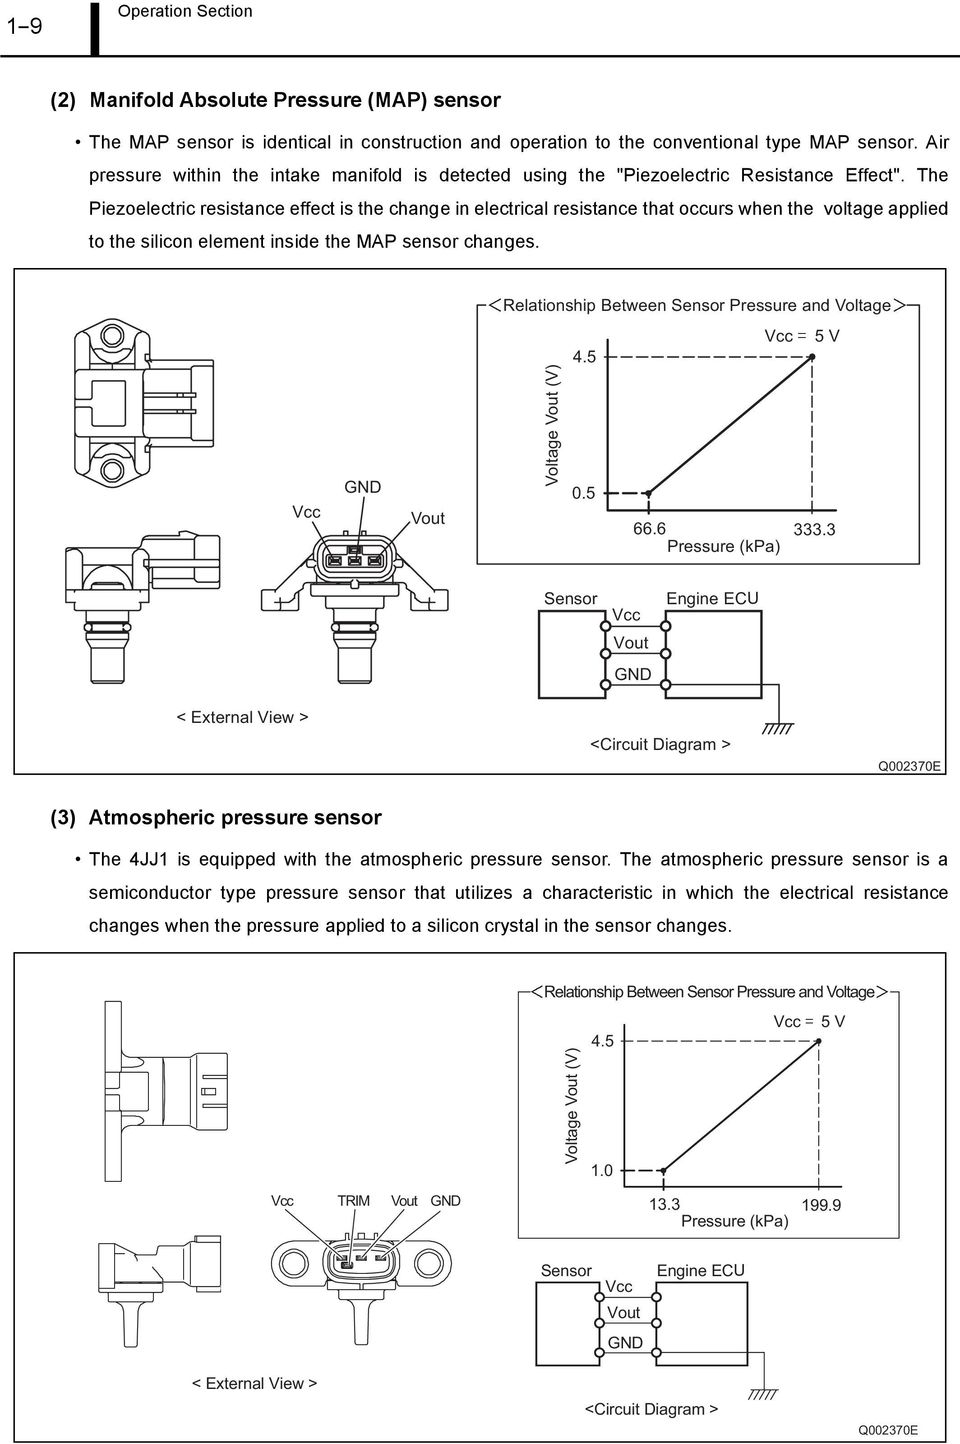 Common Rail System Crs Service Manual Operation Pdf Gm 6 0 Engine Sensor Diagram The Piezoelectric Resistance Effect Is Change In Electrical That Occurs When Voltage Applied